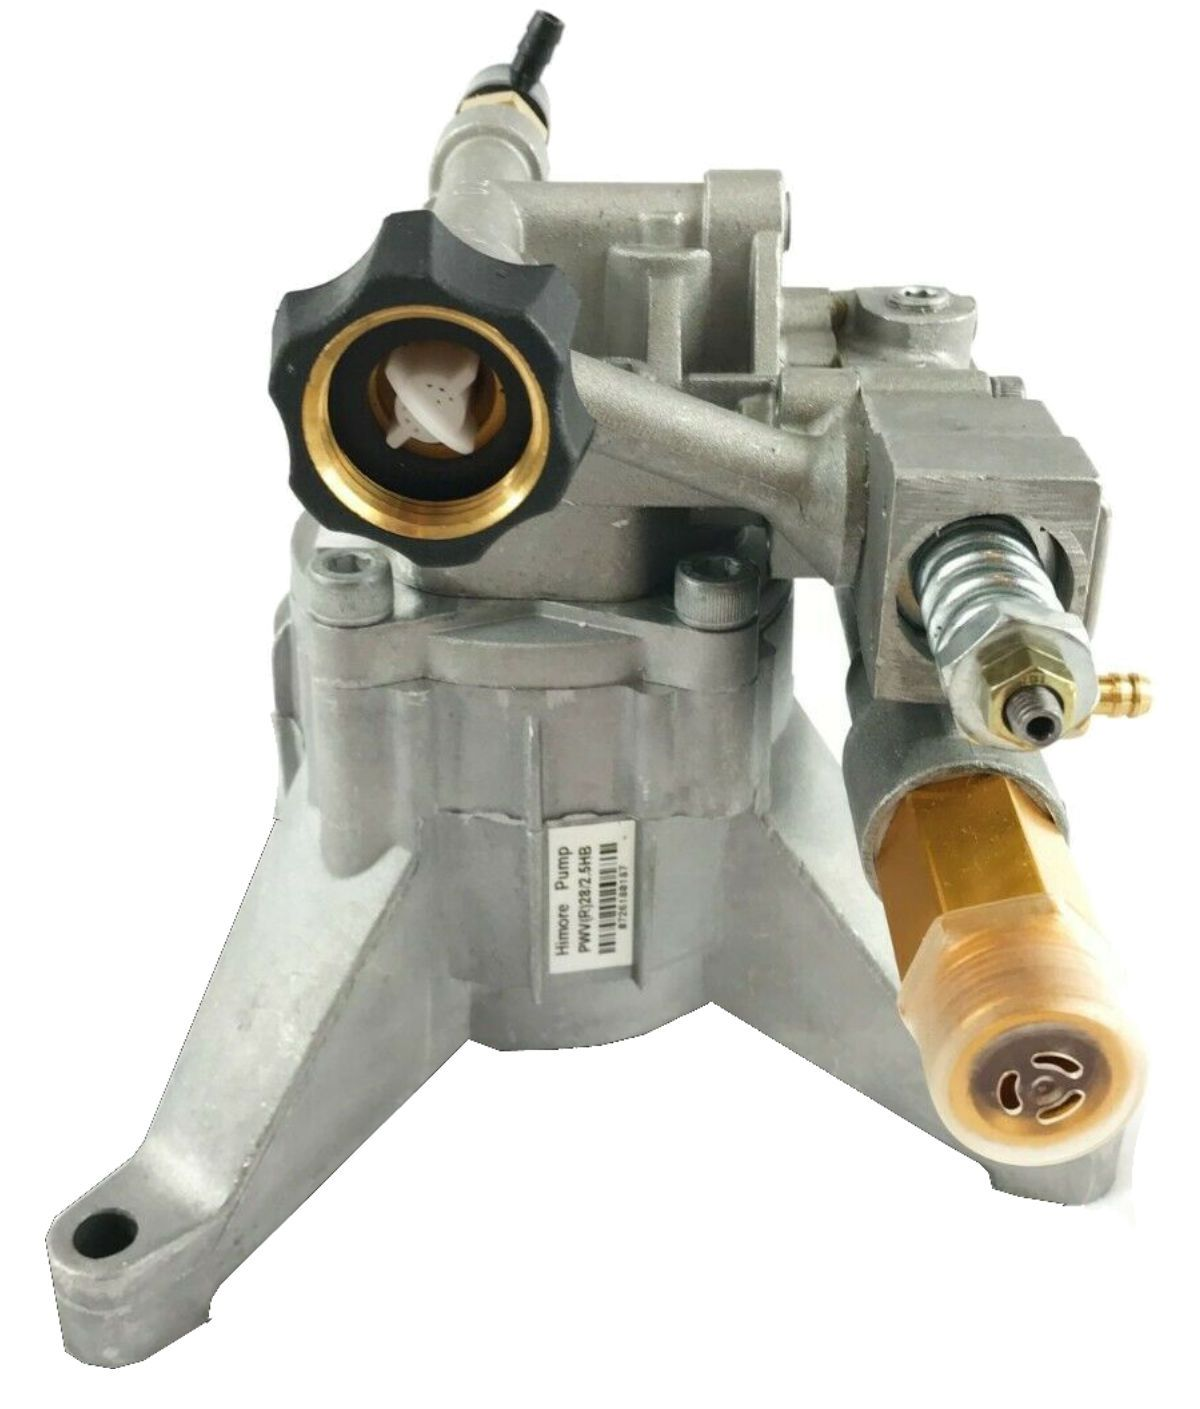 2700 PSI PRESSURE WASHER WATER PUMP Sears 580.768342 580.768350 - AE-Power